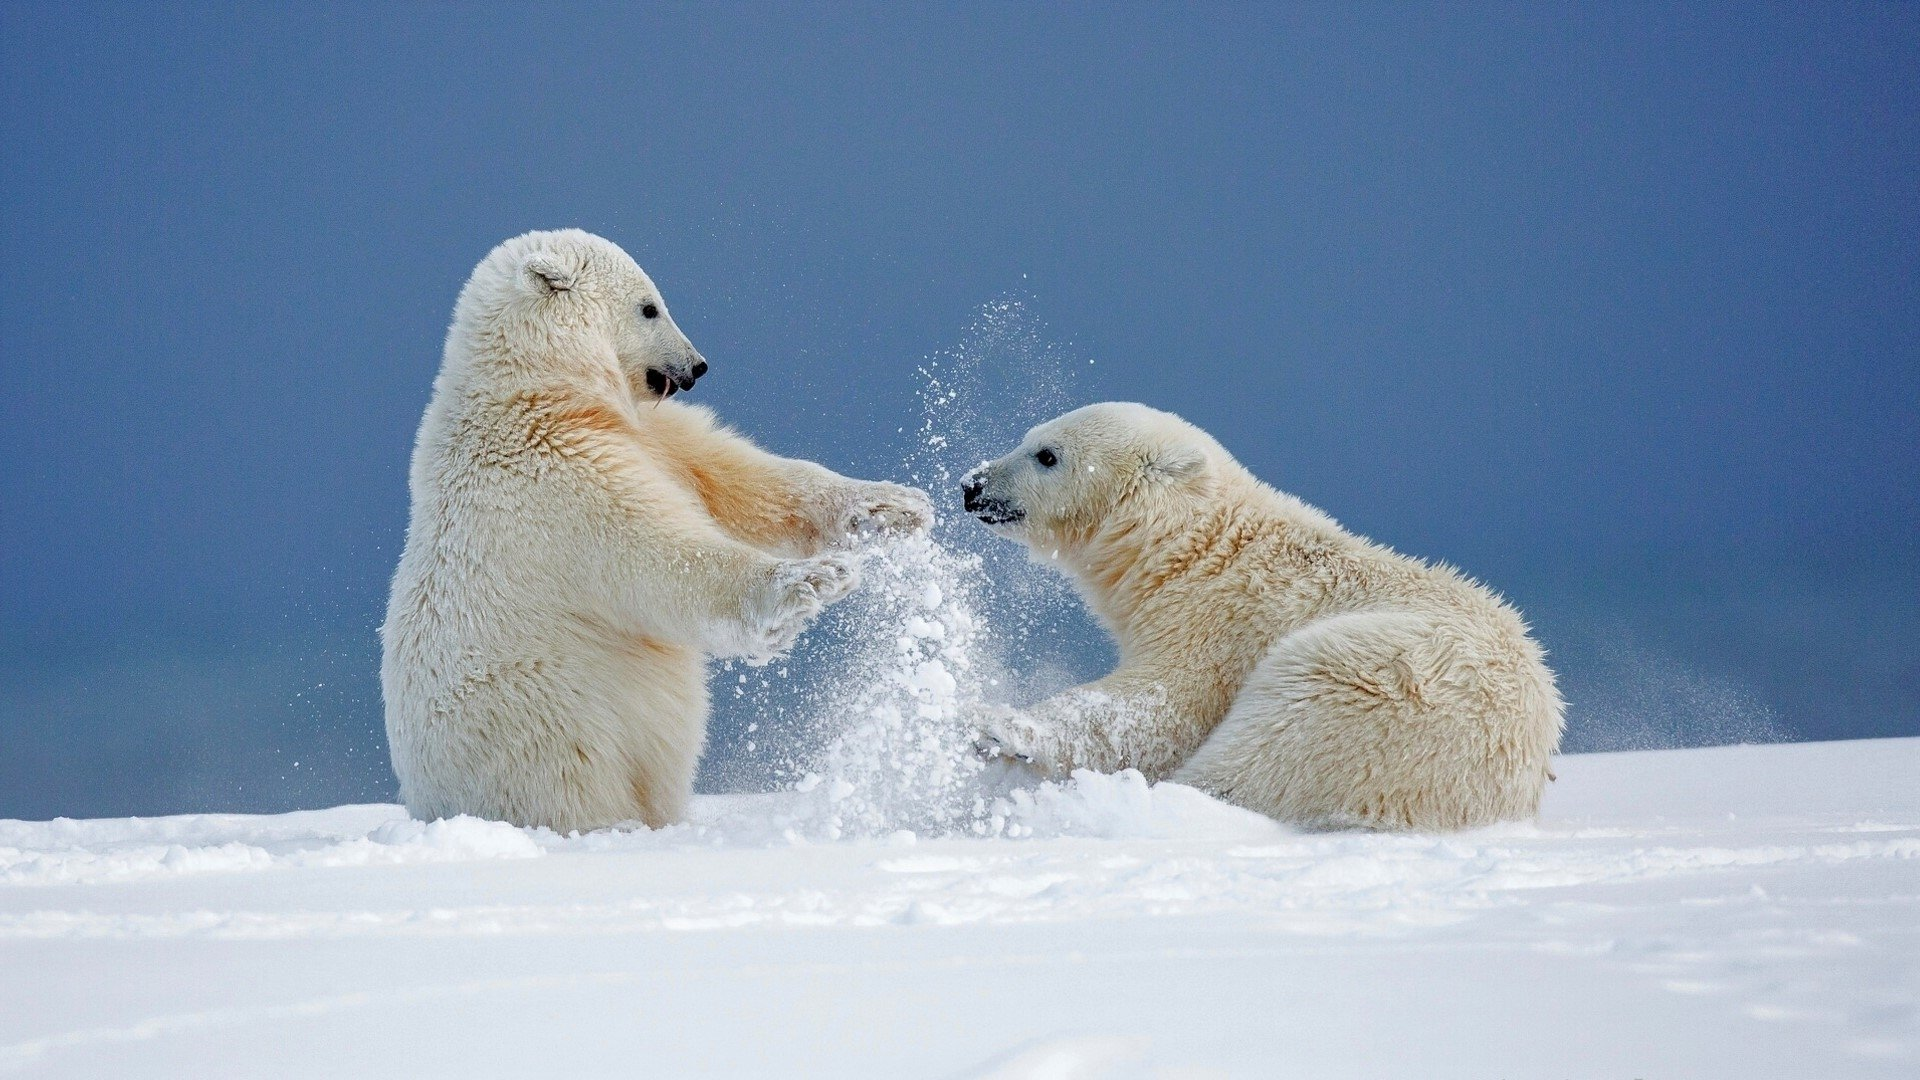 polar bears playing in the snow hd wallpaper background. Black Bedroom Furniture Sets. Home Design Ideas